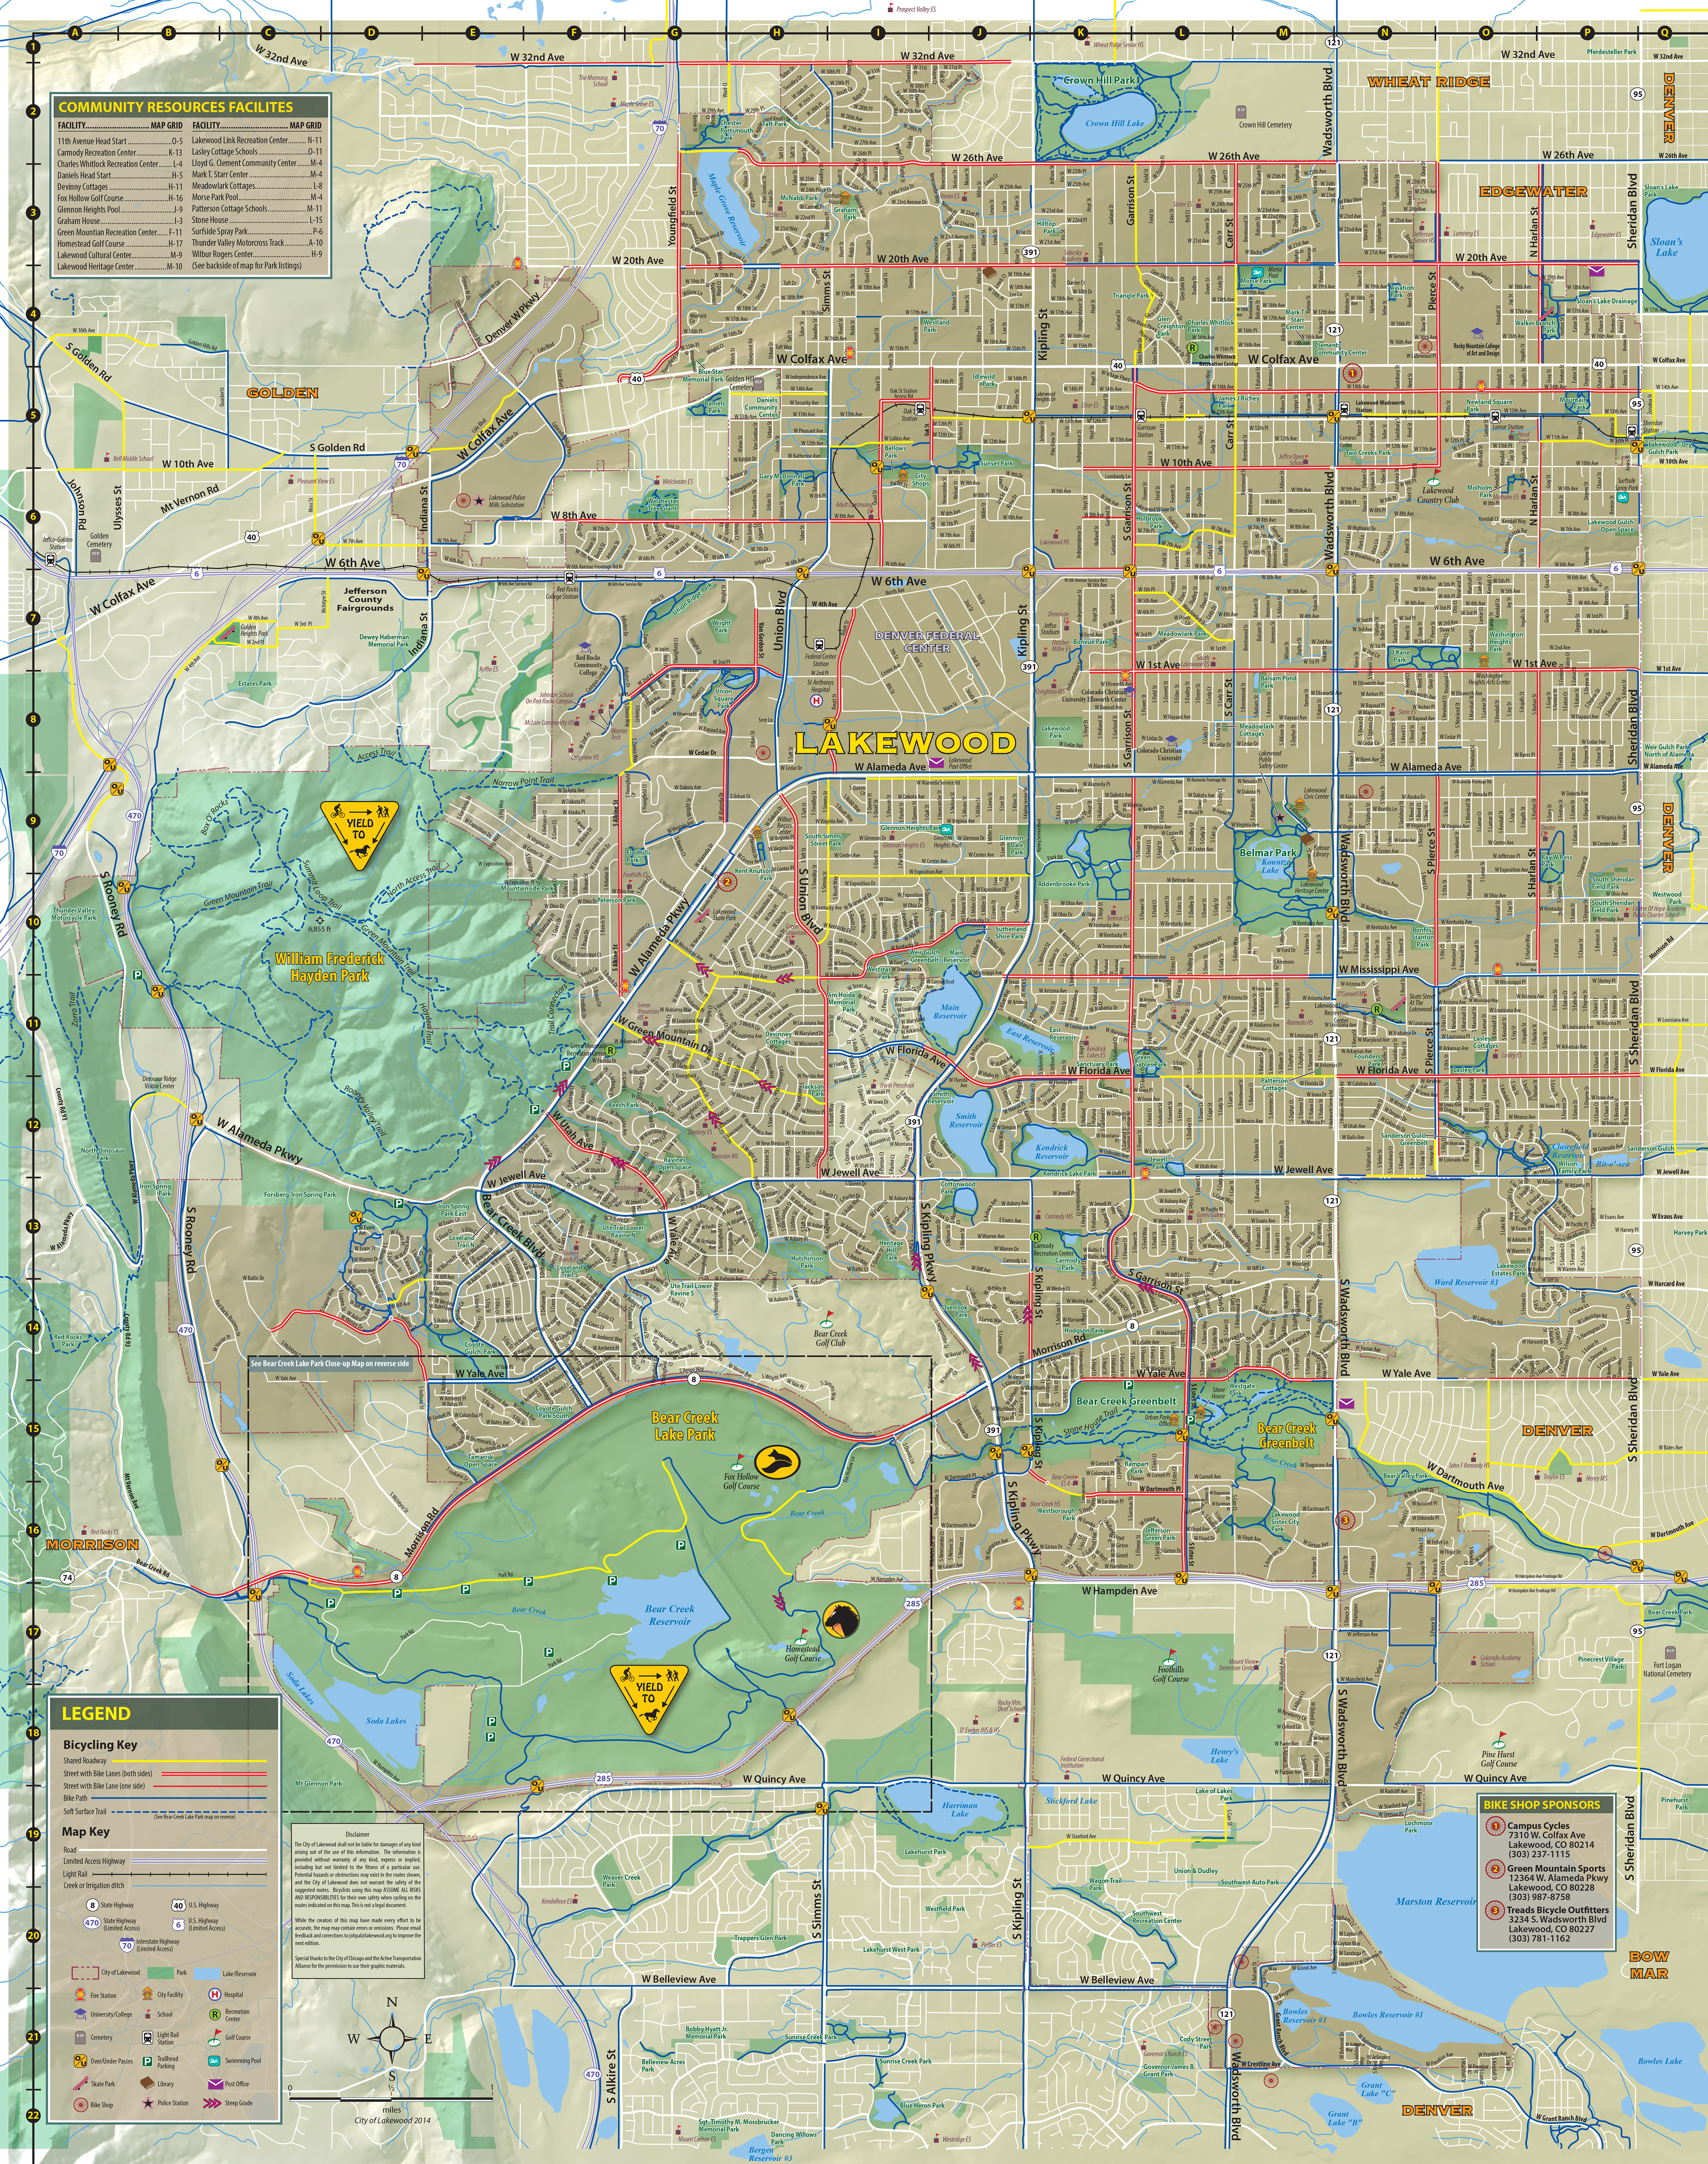 Trail Maps - City of Lakewood